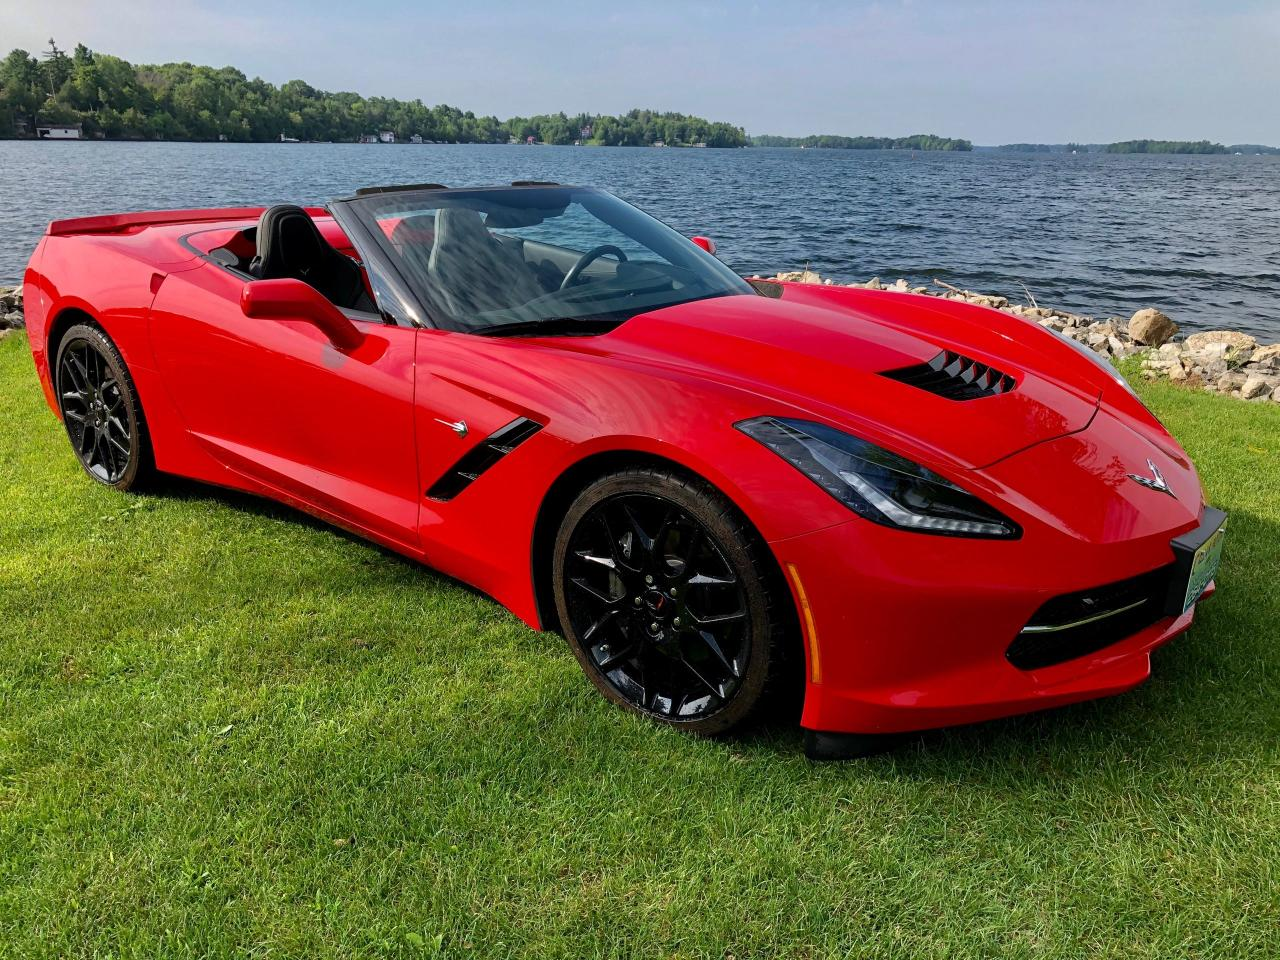 2018 Chevrolet Corvette Convertible 2LT   With only 13800 km